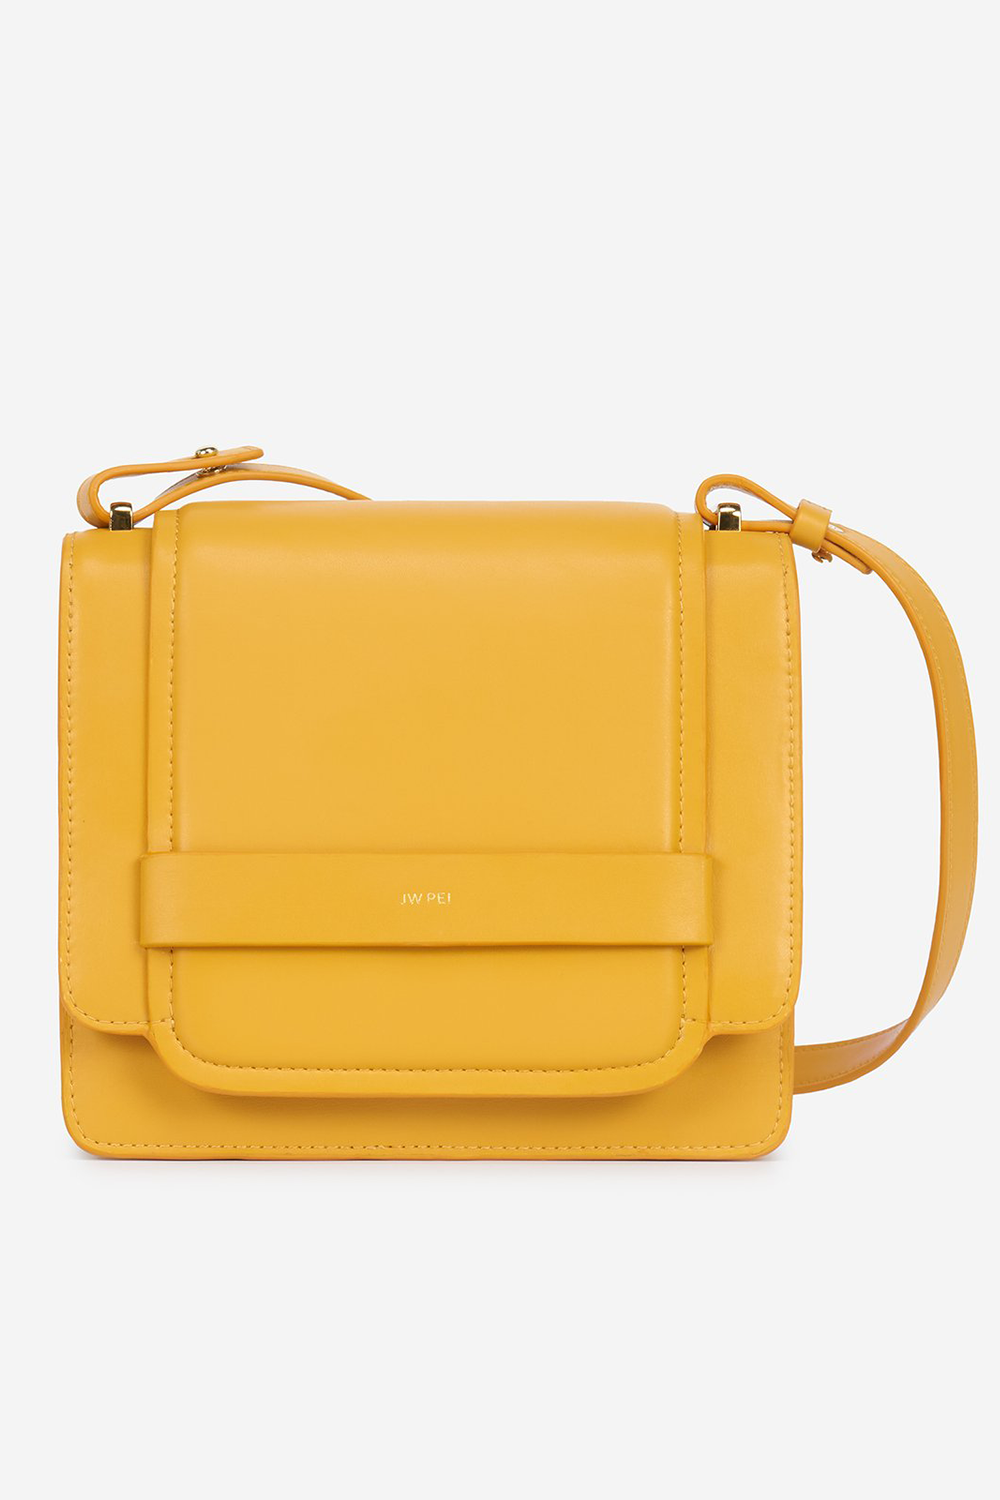 Fiona Bag in Mustard